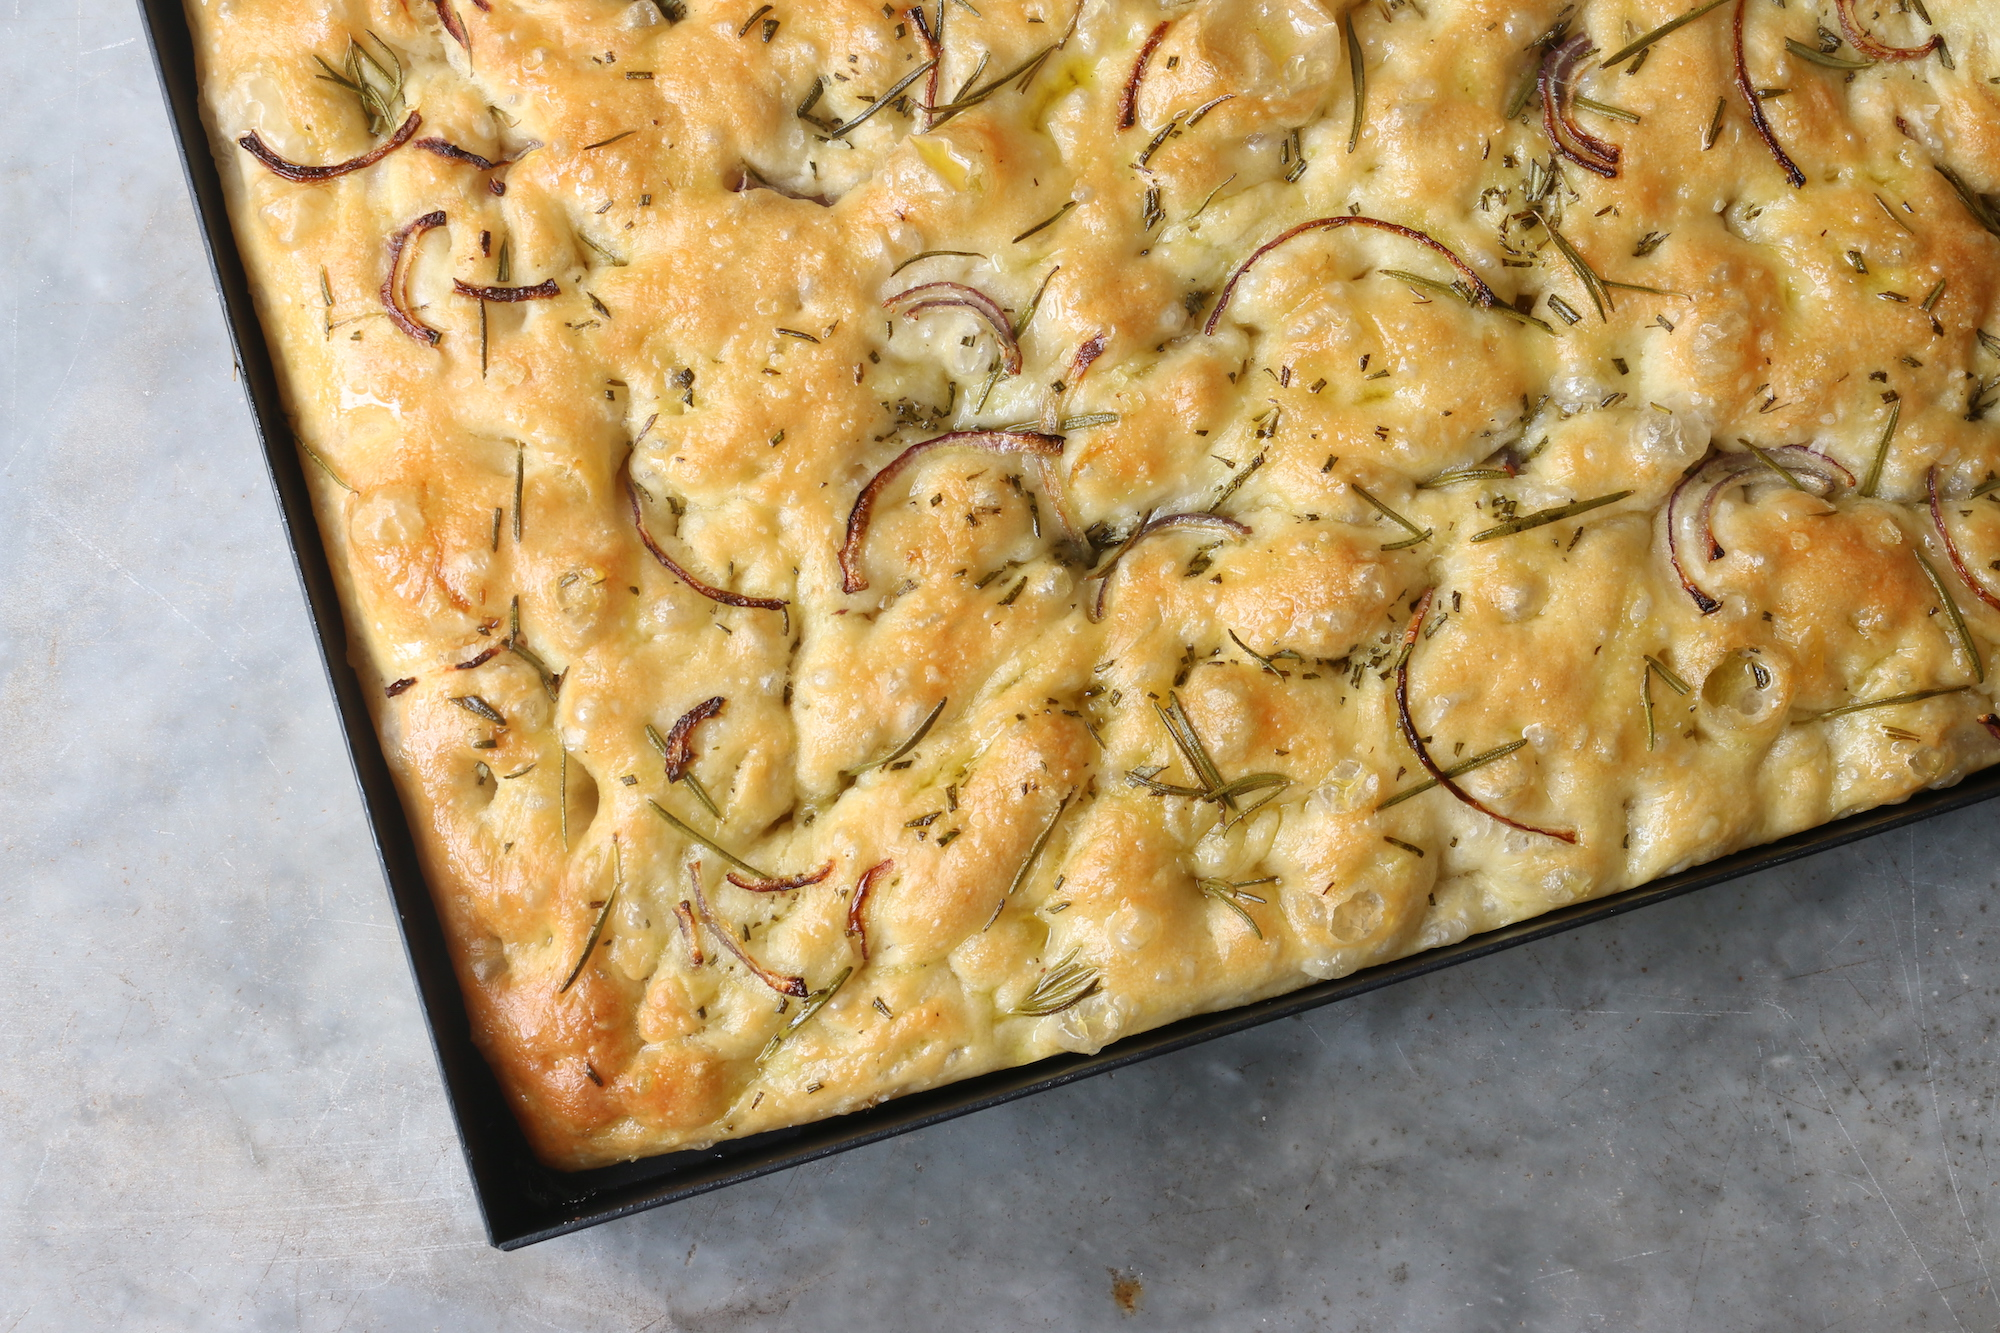 Baked healthy bread rosemary and red onion focaccia